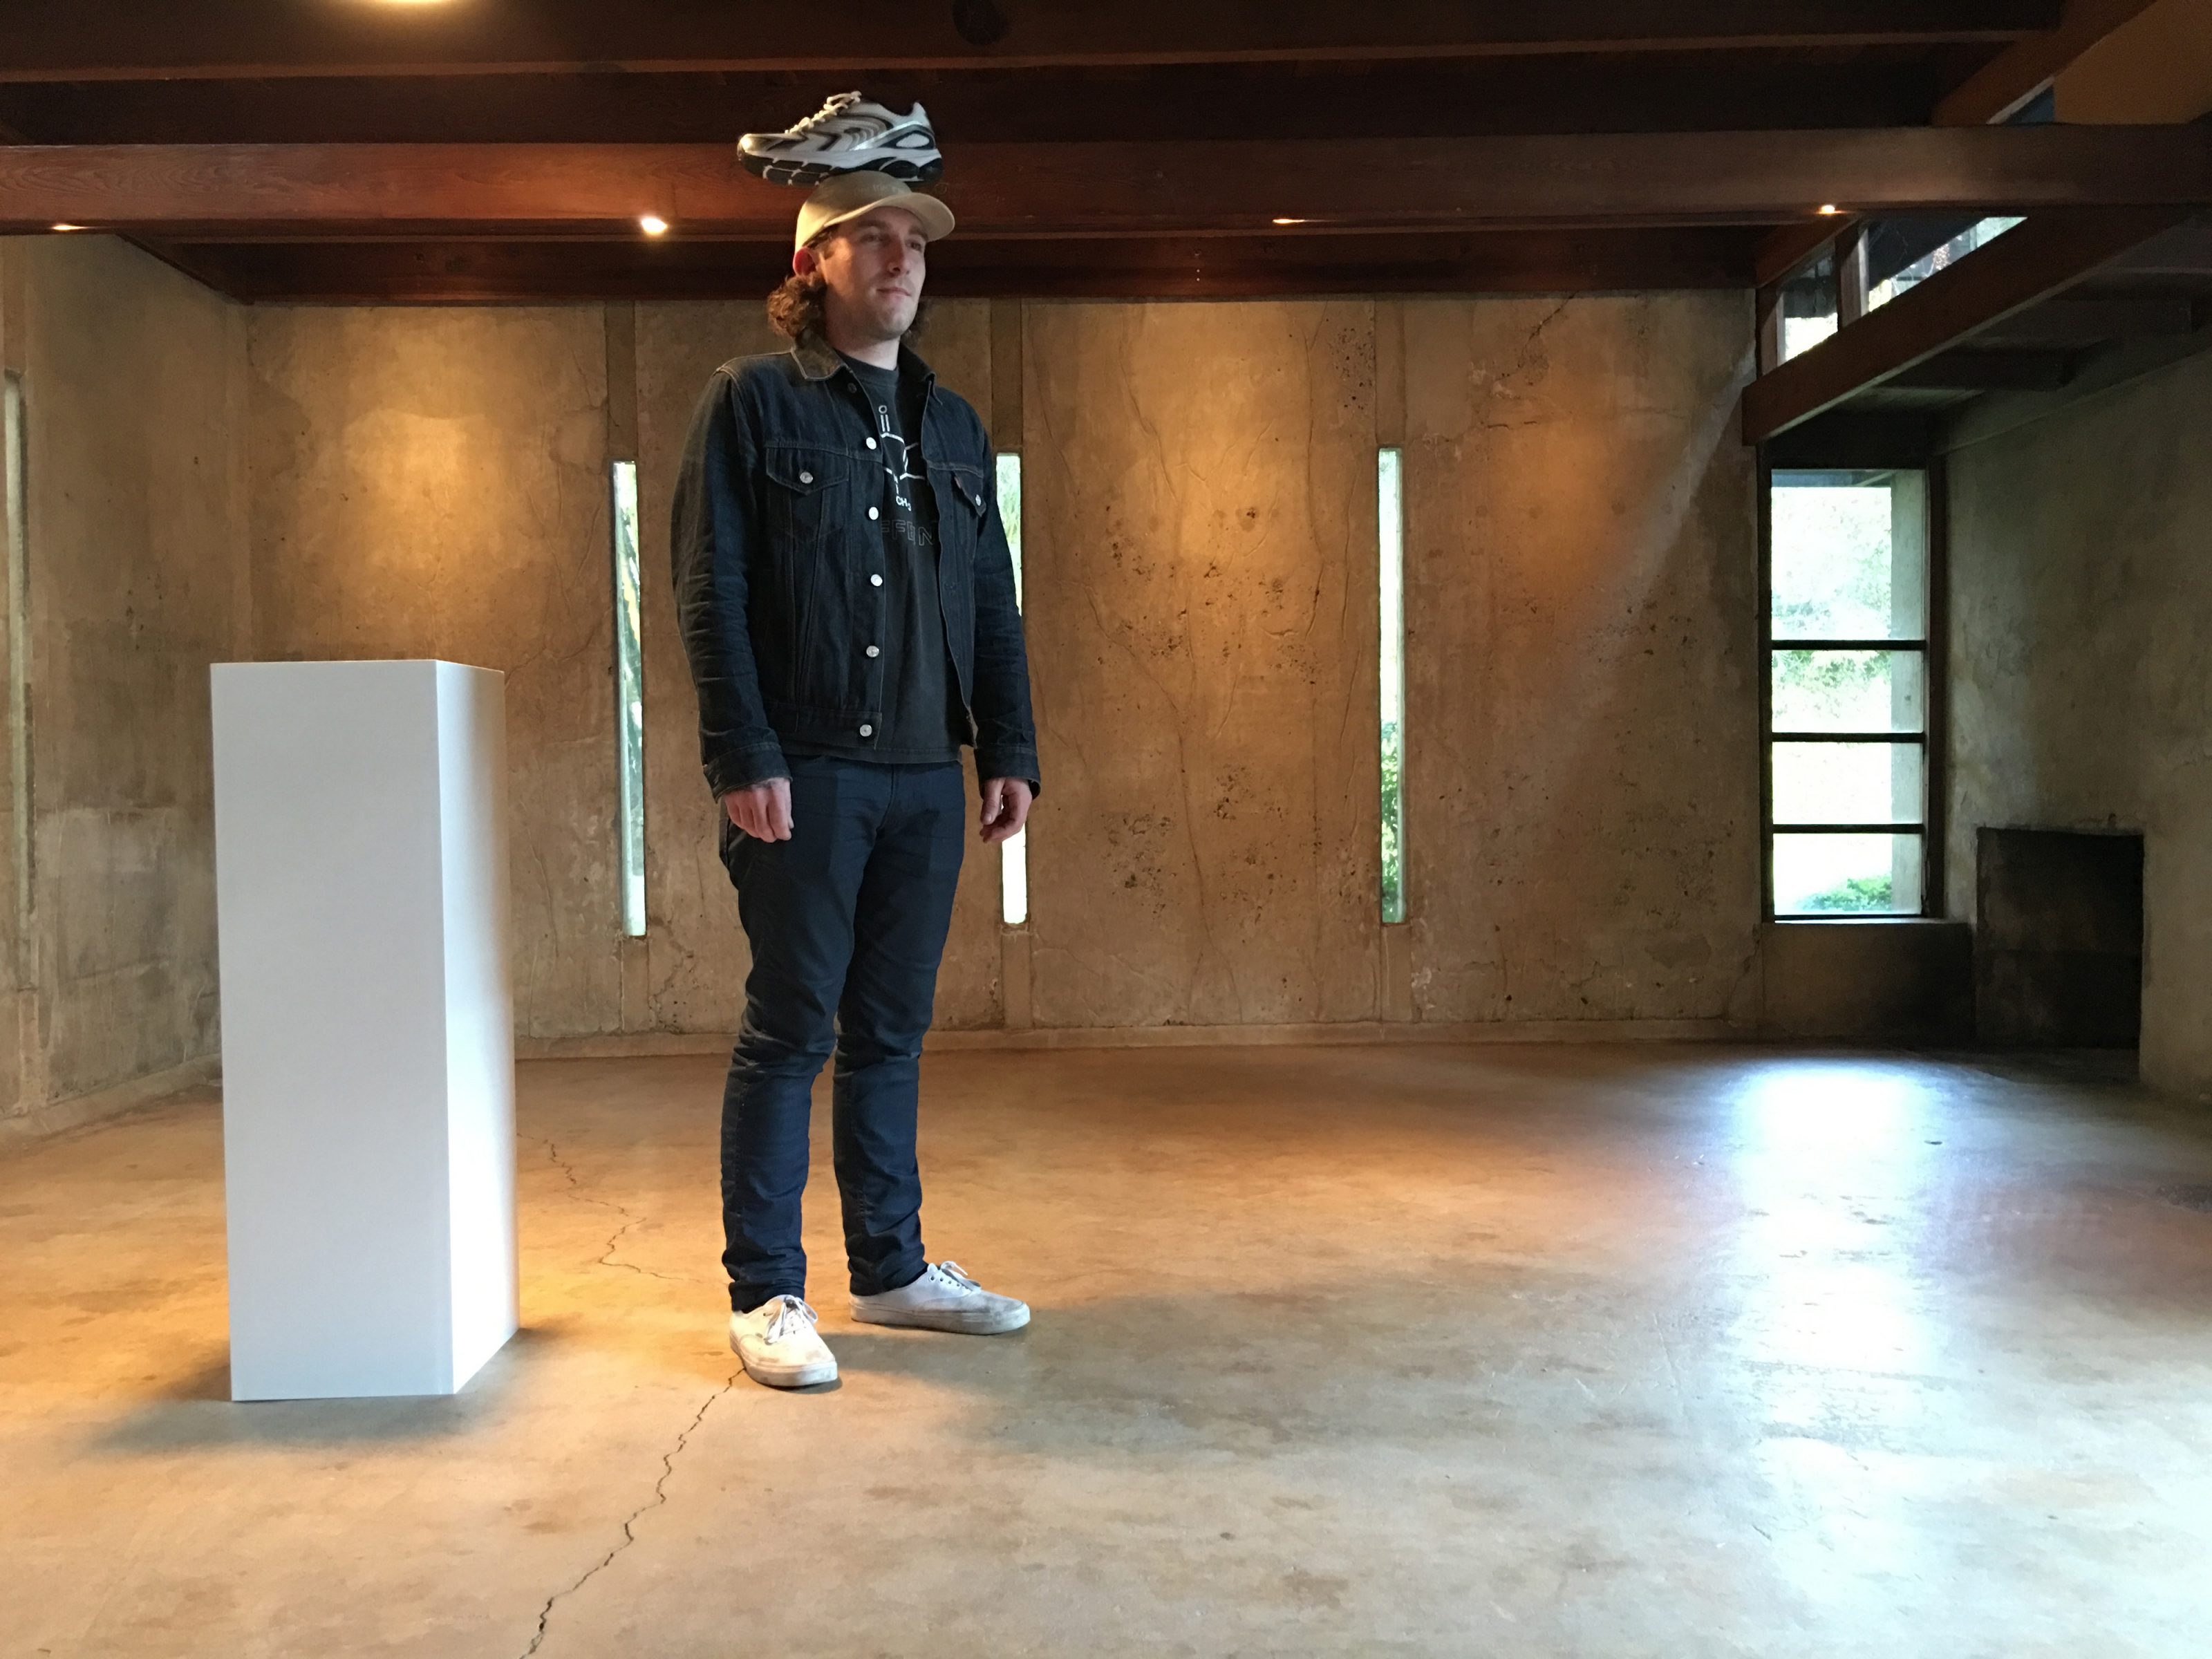 Erwin Wurm,One Minute Sculptures, Installation view,MAK Center for Art and Architecture, Los Angeles at the Schindler House, CA